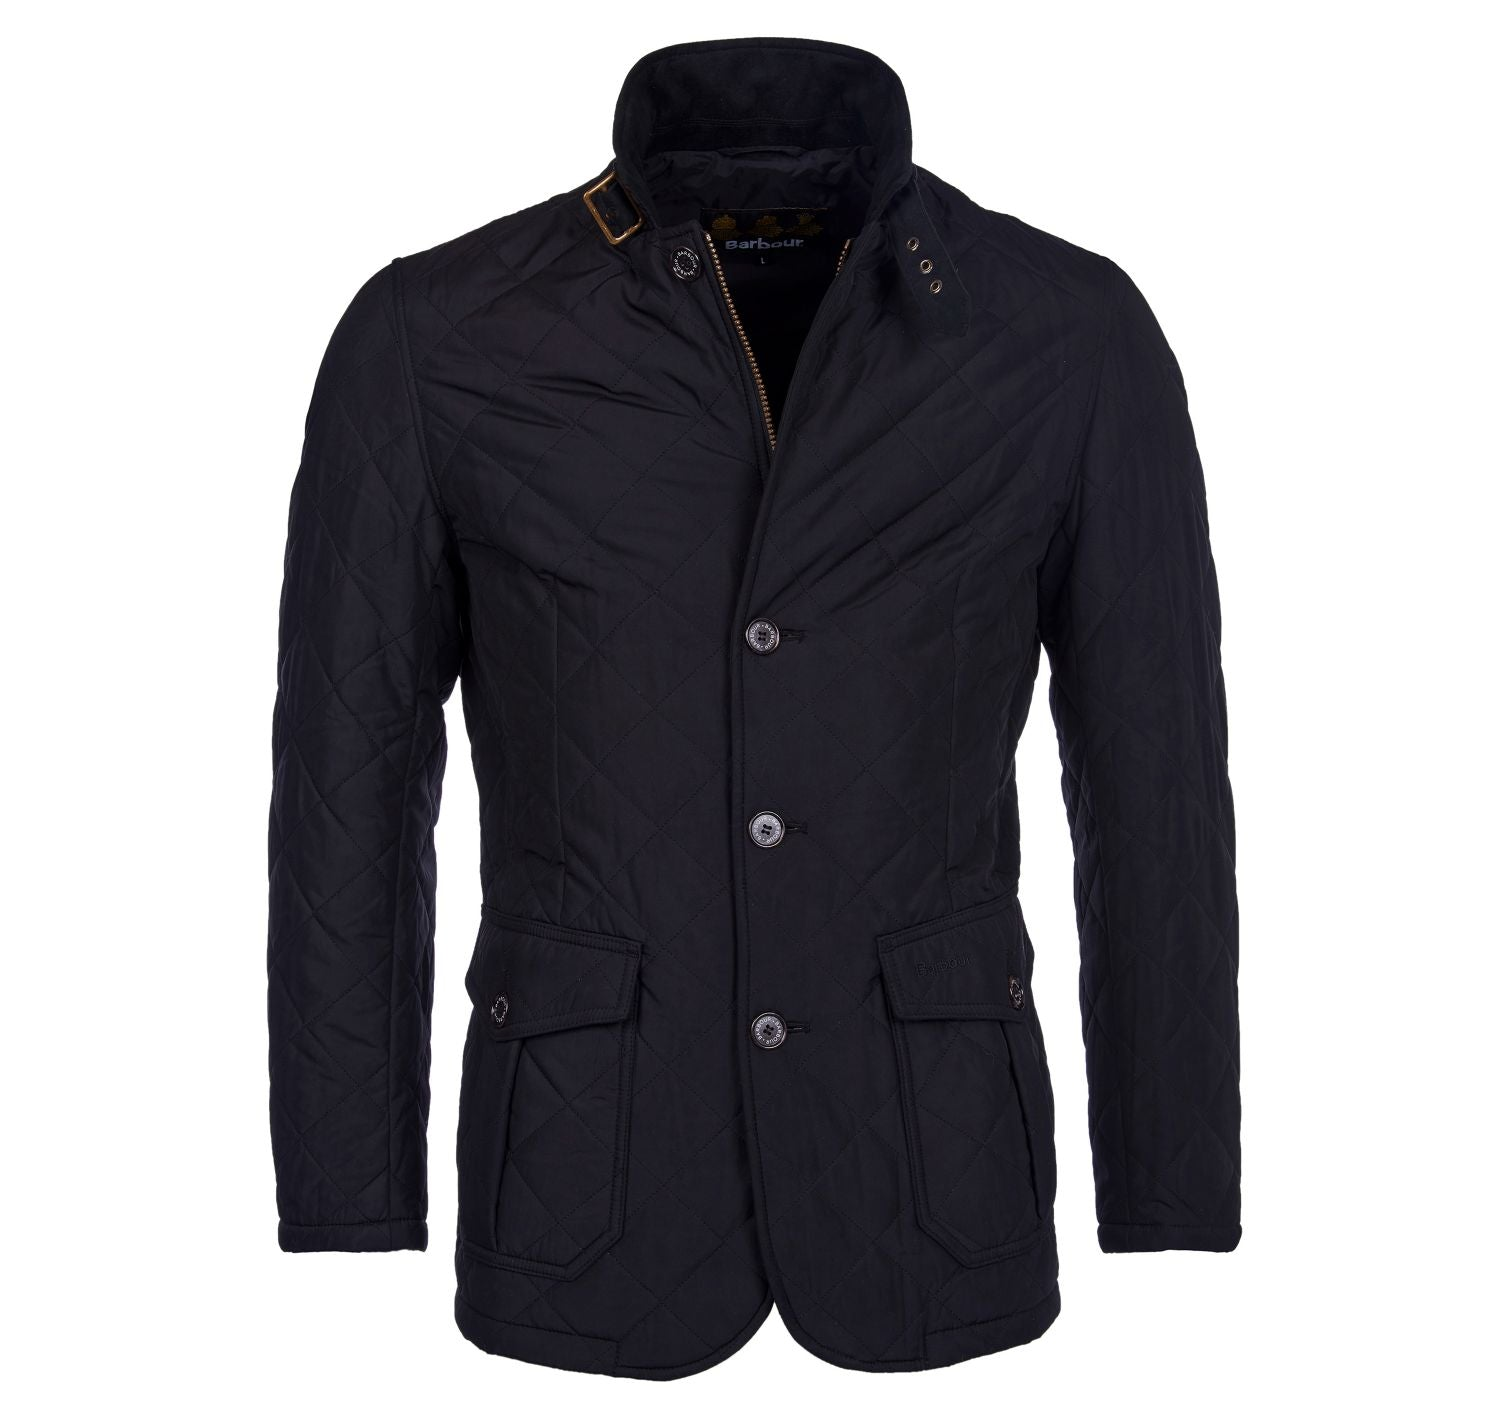 Barbour Lutz Quilted Jacket - SALE - North Shore Saddlery